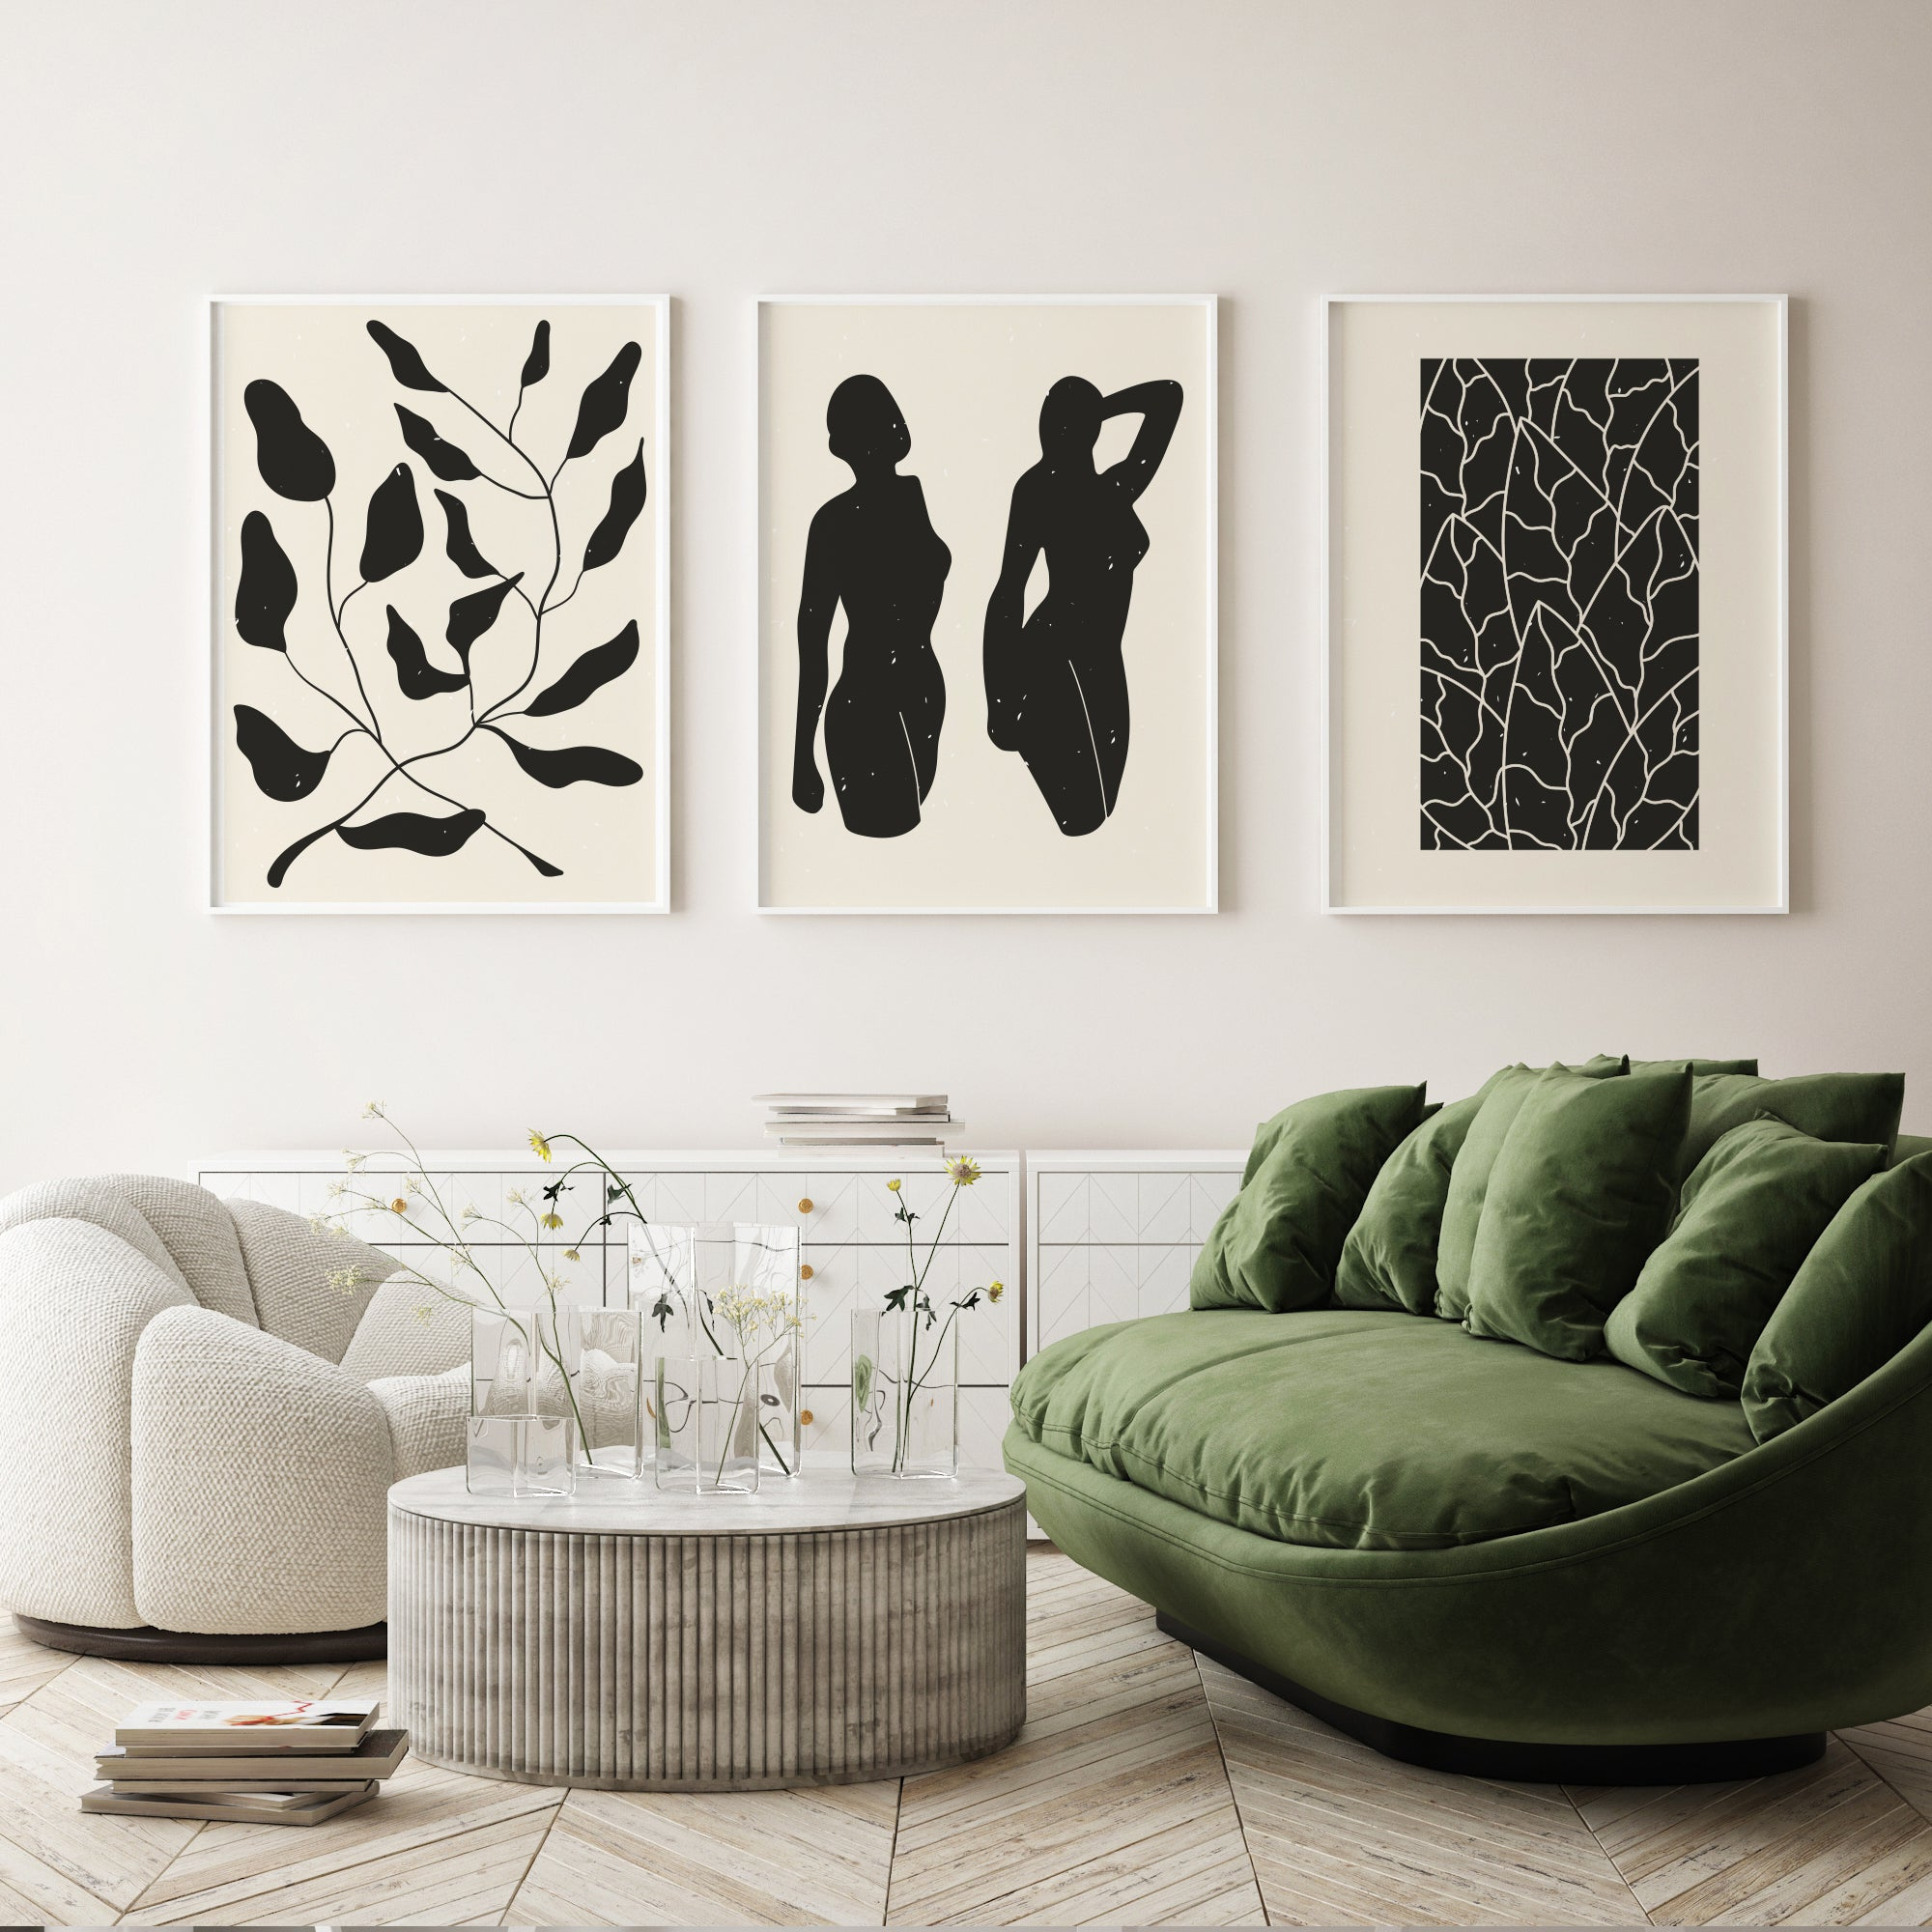 Living room wall art inspiration, minimalist black and white poster